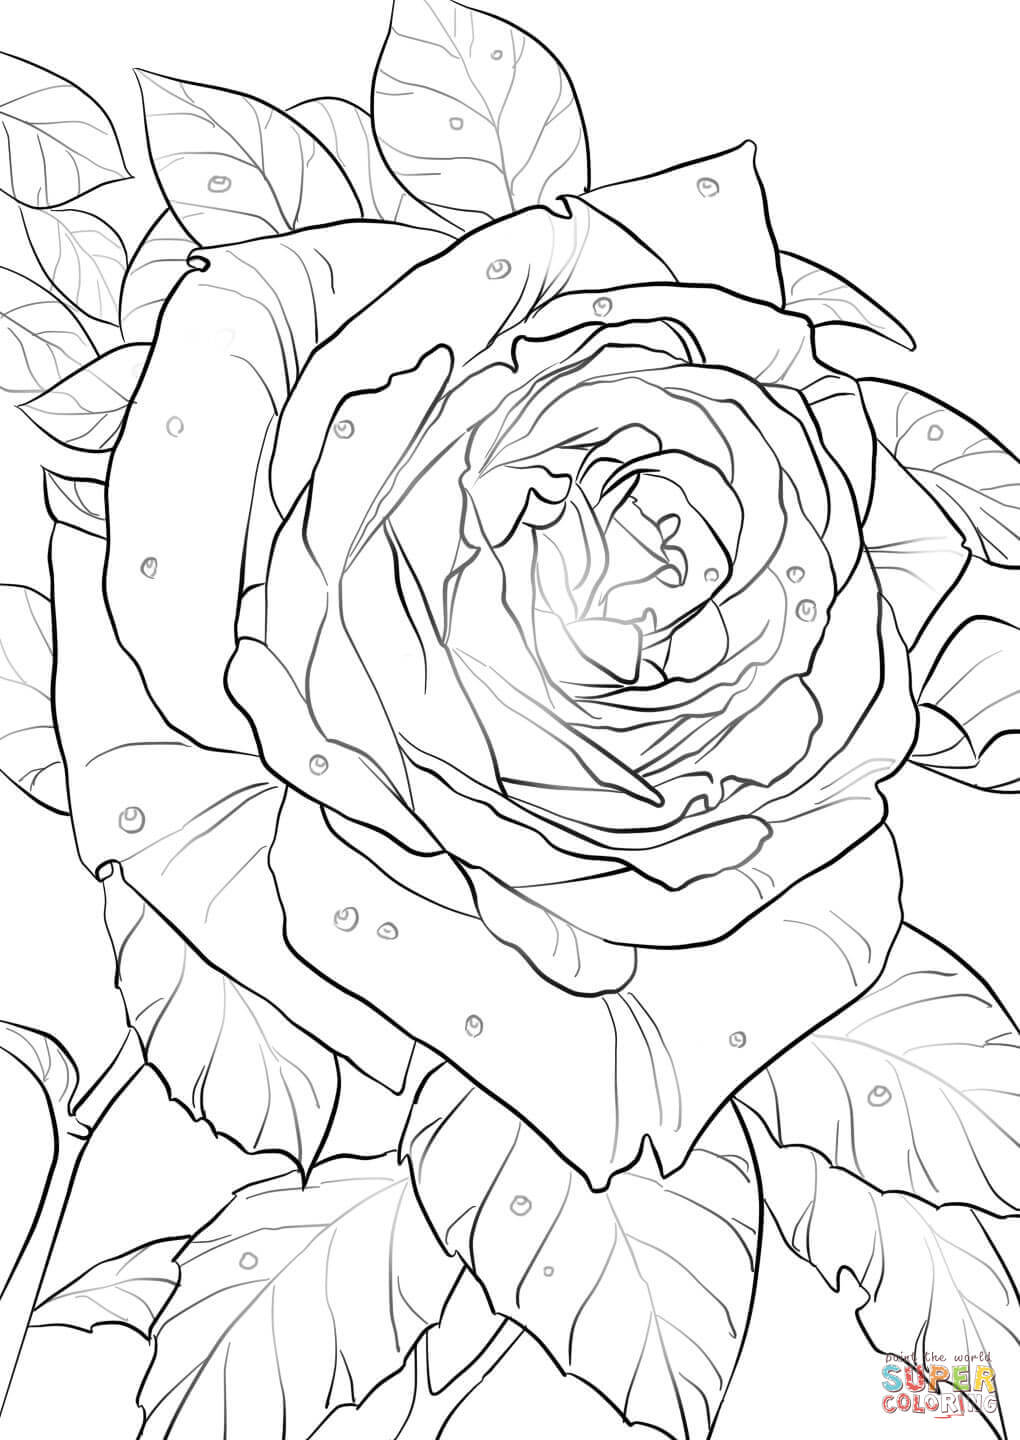 Cherokee Rose Drawing at GetDrawings.com   Free for personal use ...